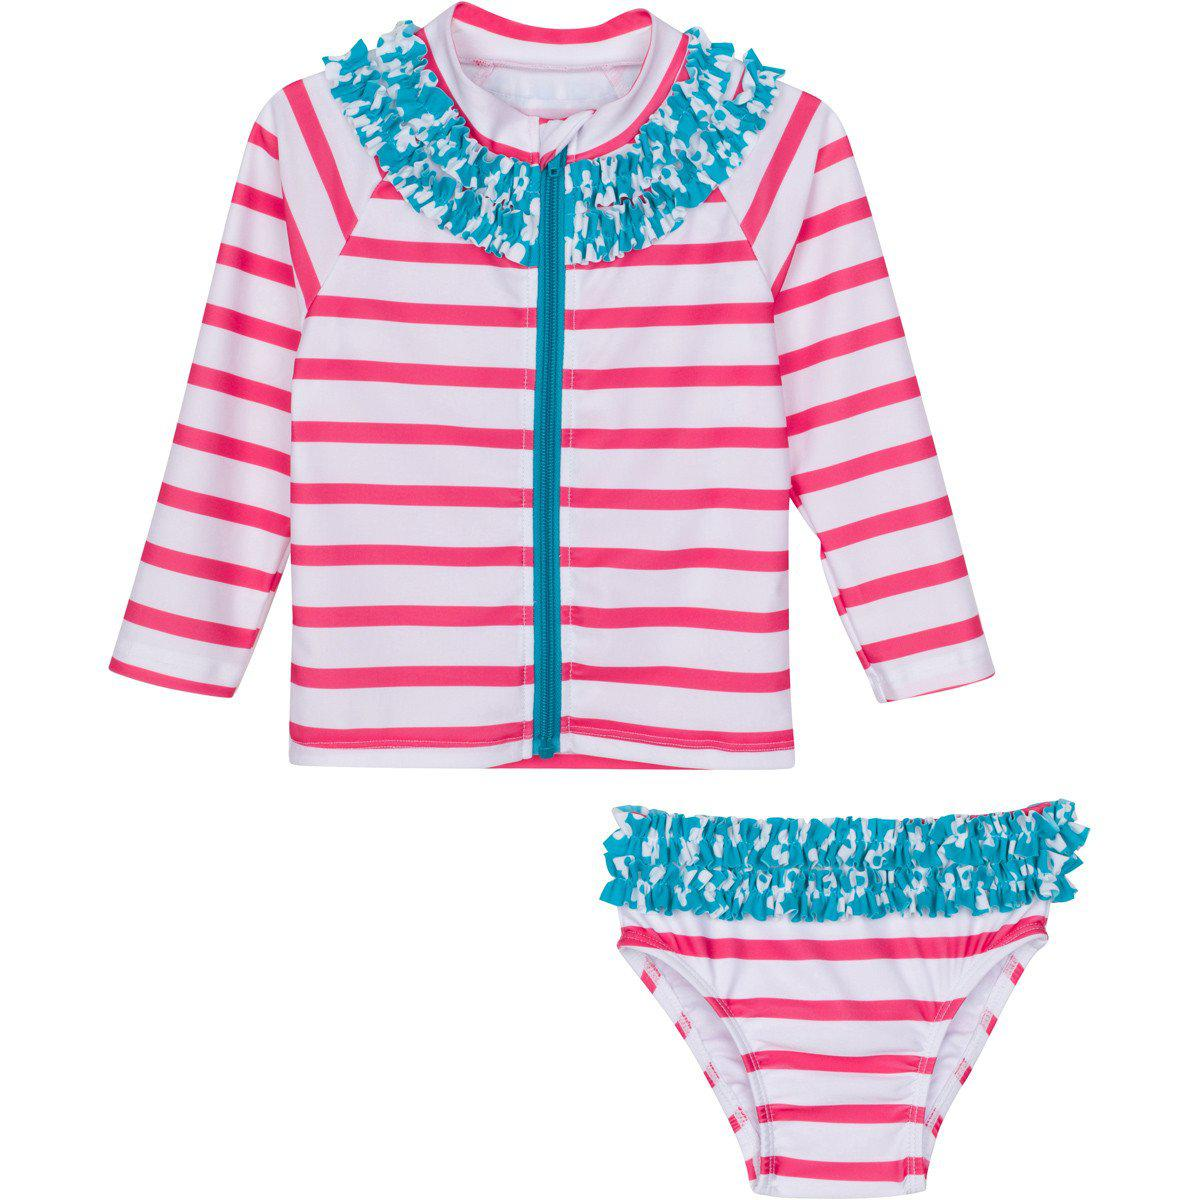 30f71b1989d90 Little Girl Long Sleeve Girl Rash Guard Swimsuit Set (2 Piece) -